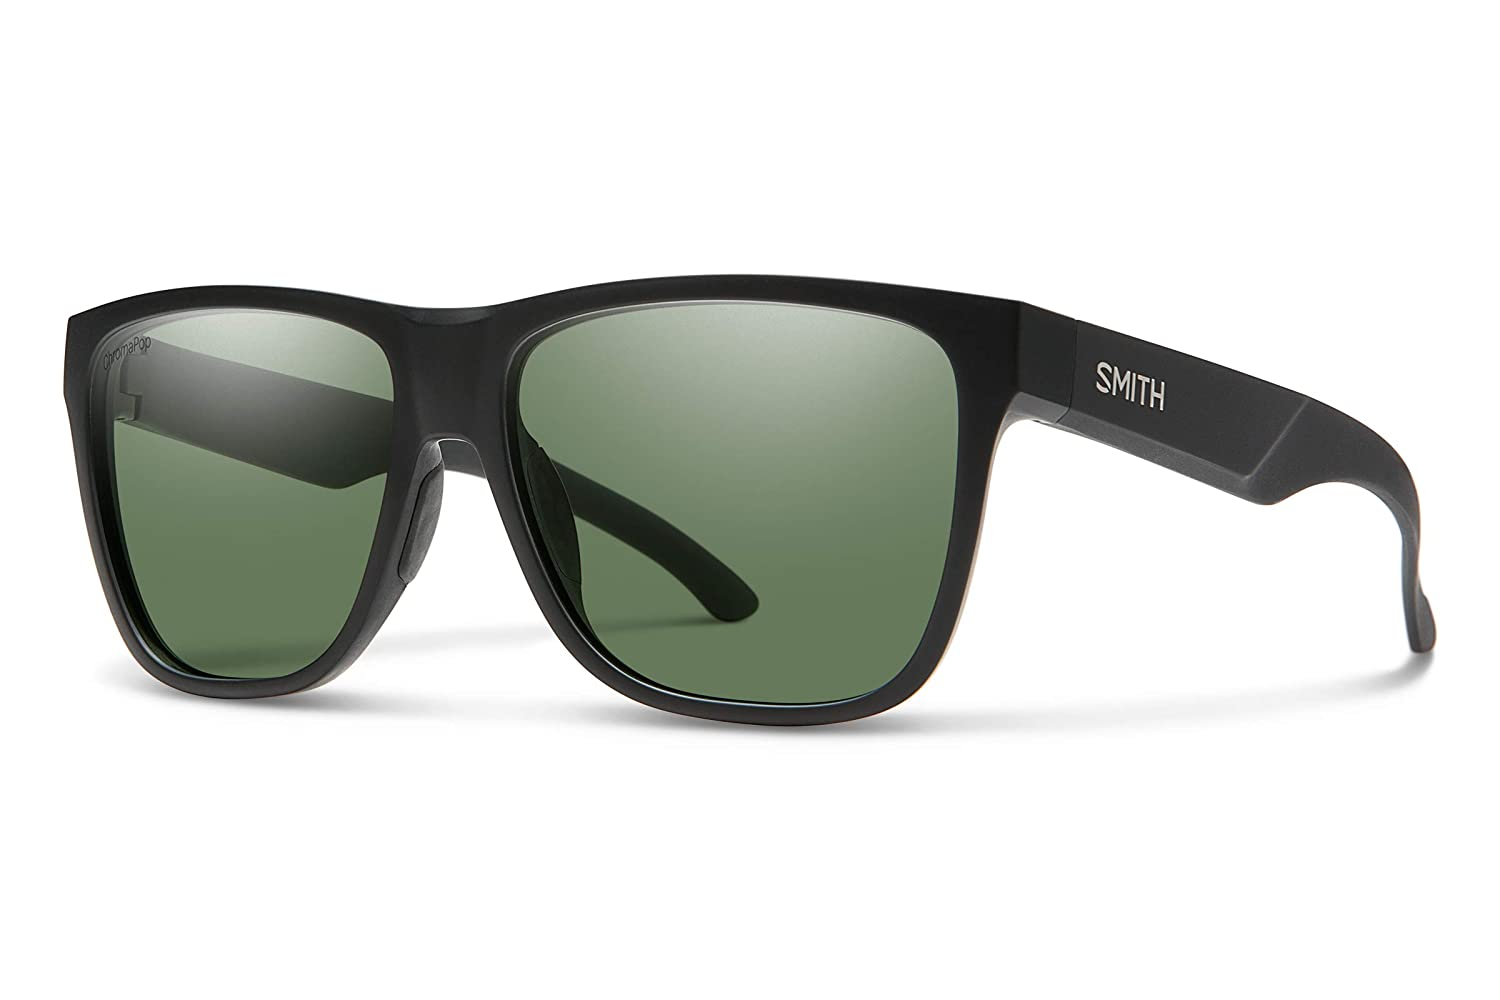 Smith Sunglasses, USA メンズ  Matte Black / Chromapop Polarized Gray Green B07MTN6P81